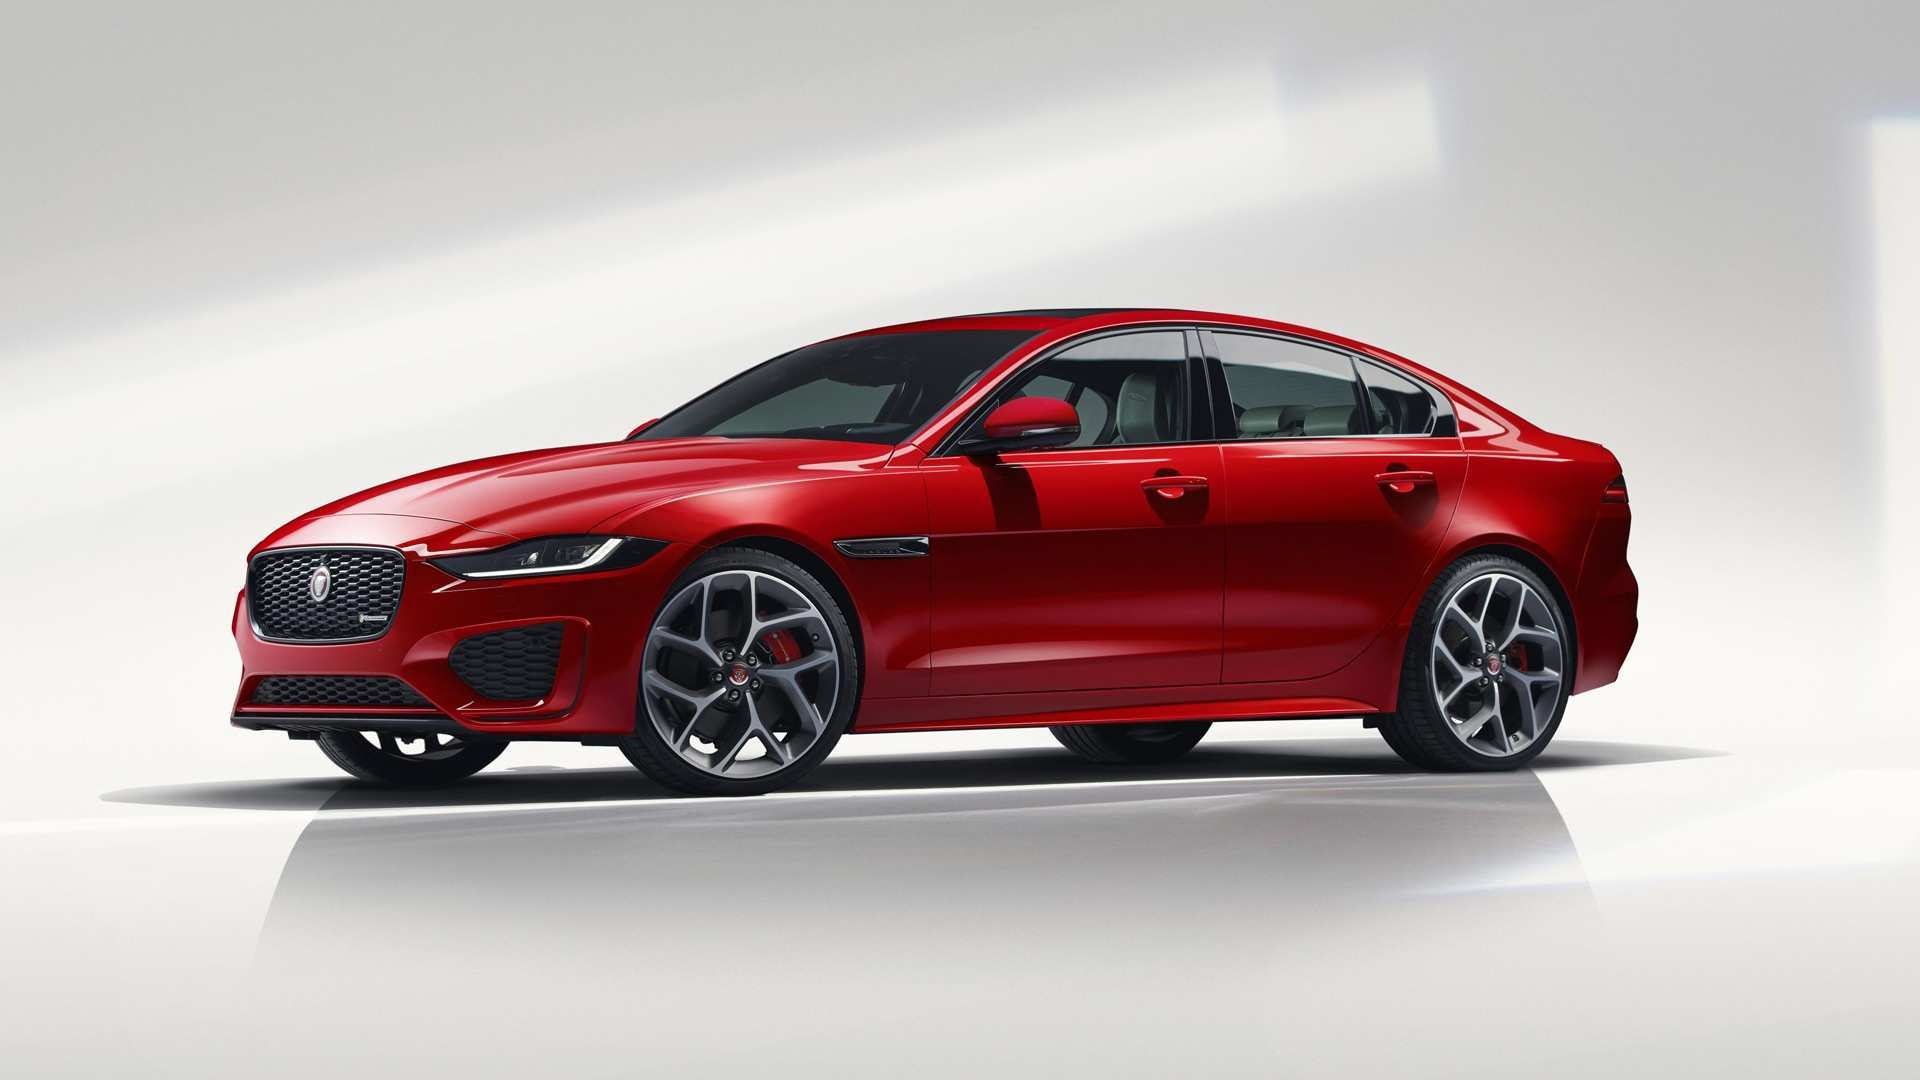 78 All New 2020 Jaguar Xe Build Price